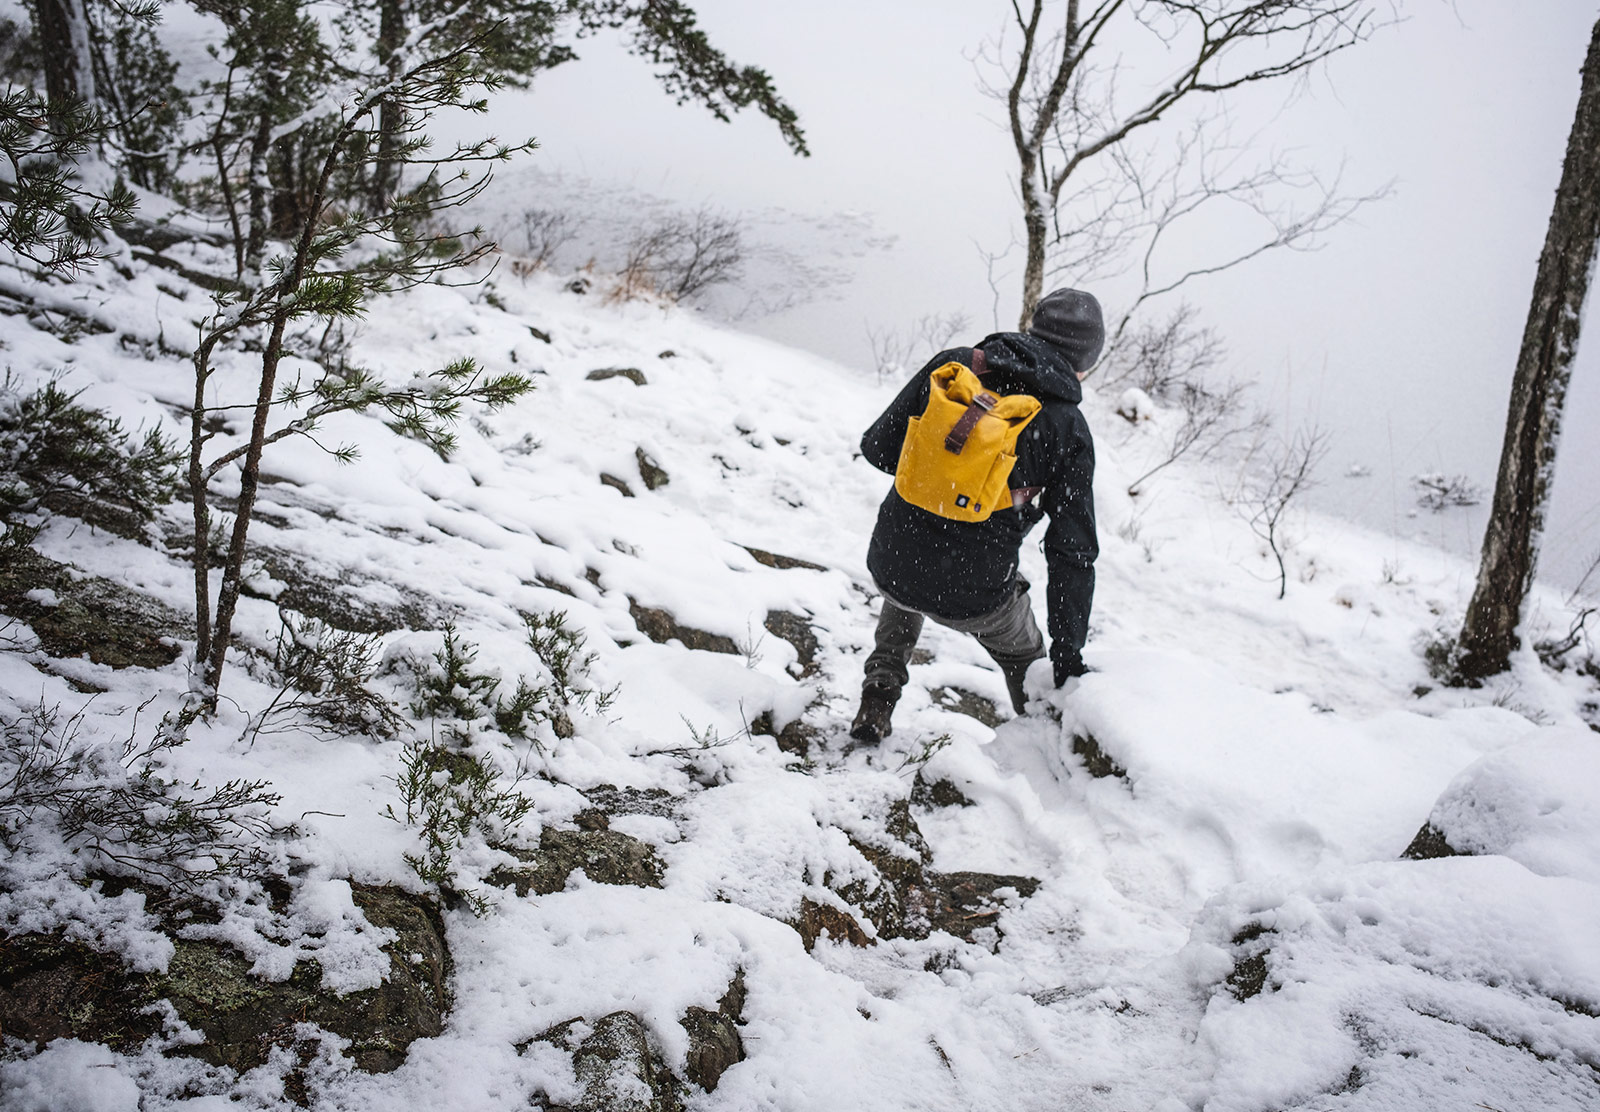 Can scrambling in snow